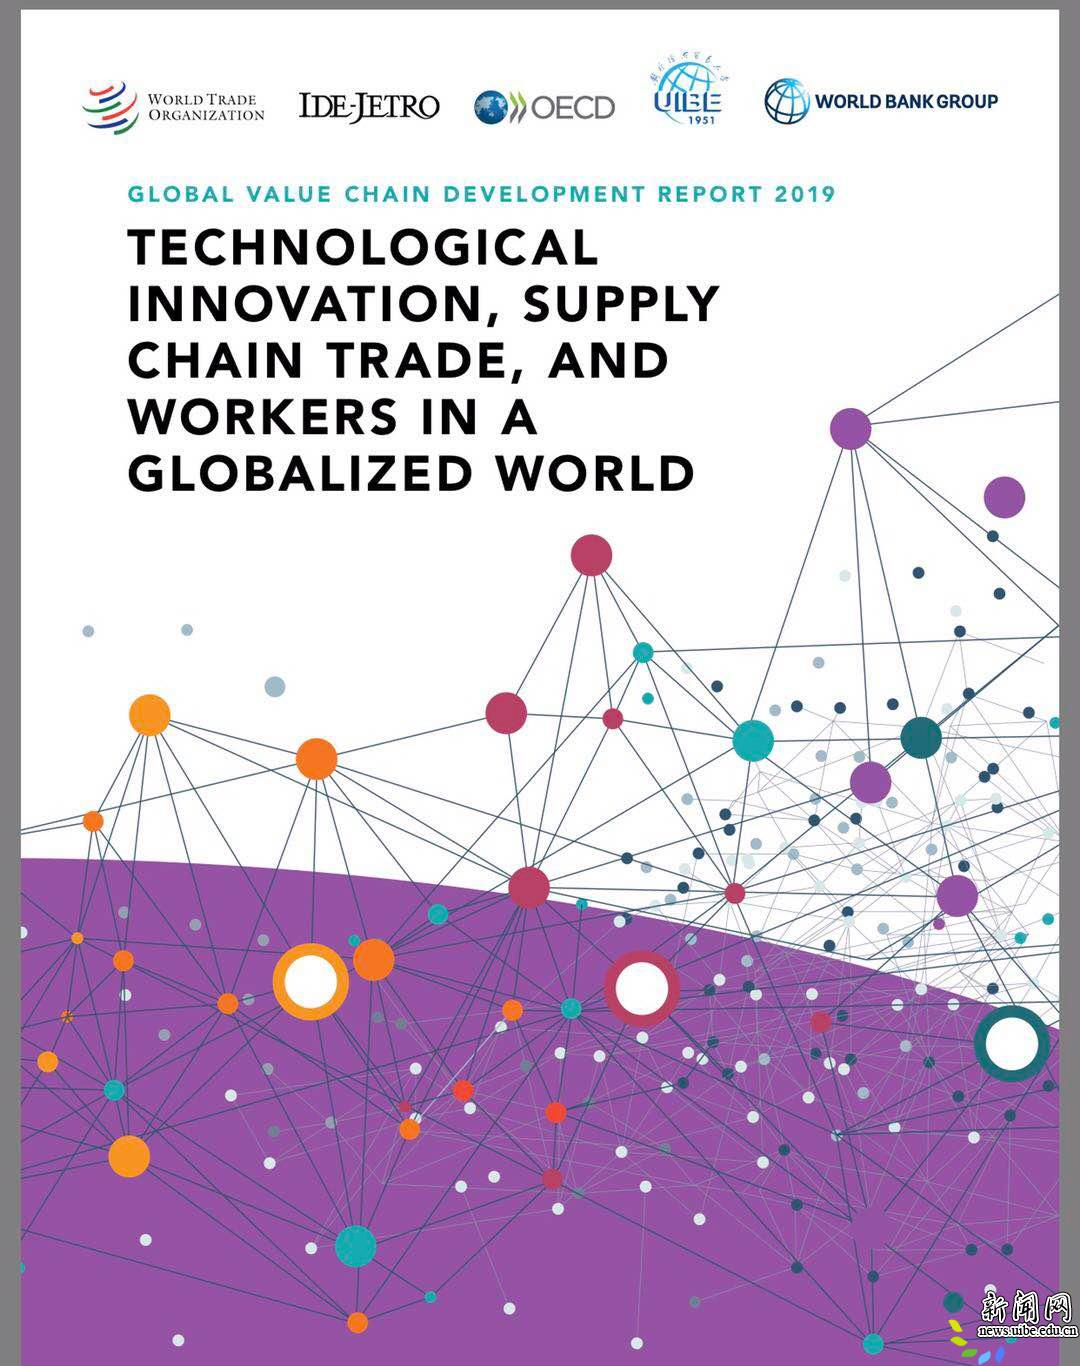 Global Value Chain Development Report 2019 released in IMF